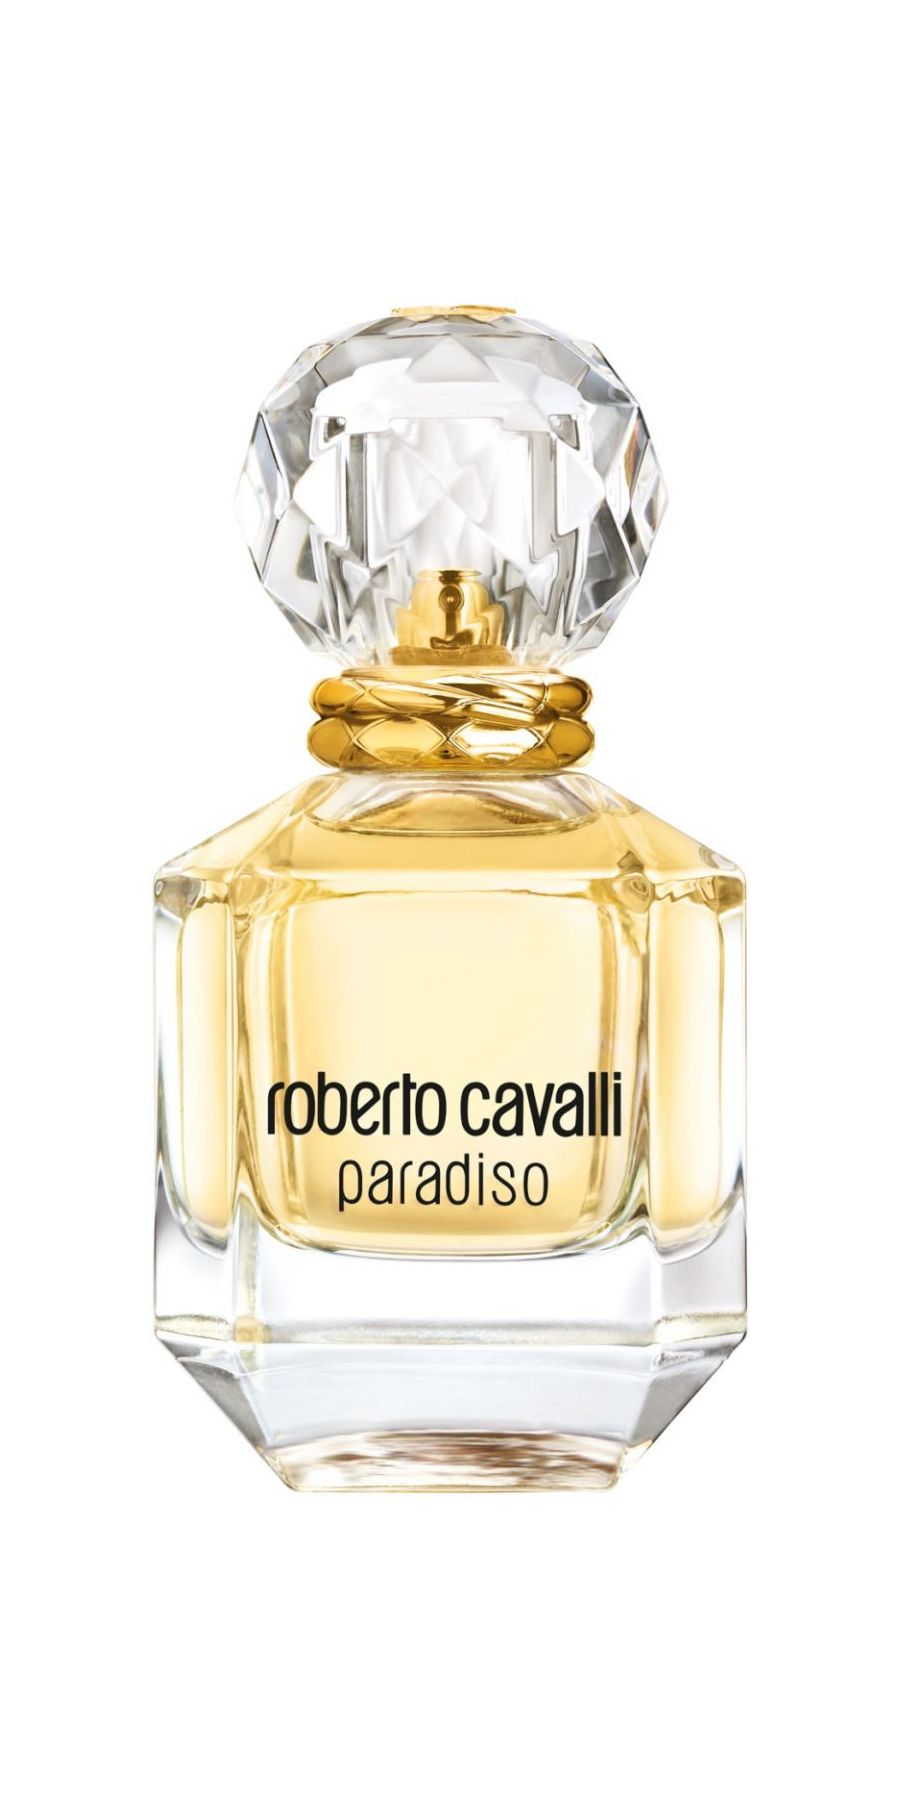 Roberto Cavalli Paradiso by Roberto Cavalli for Women EDP 75mL